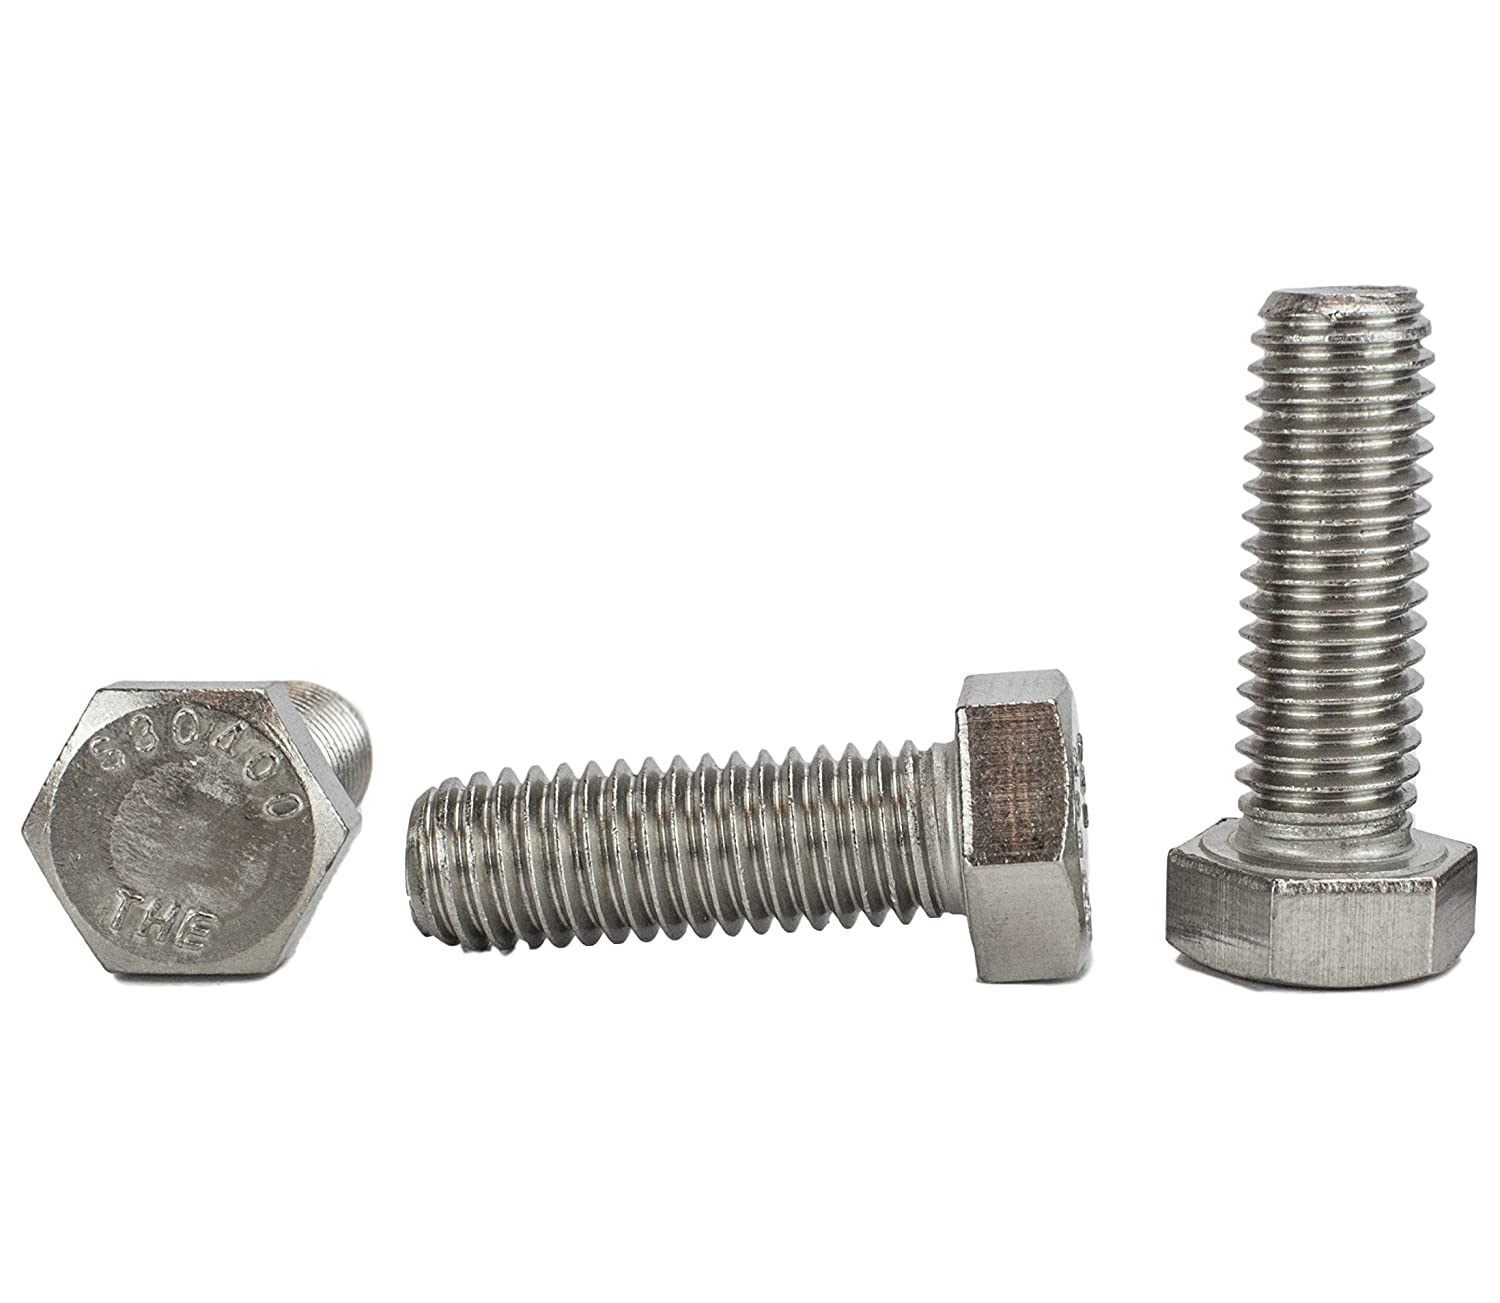 Stainless 1/2-13 x 4 Hex Head Bolts (3/4 To 5' Lengths Available in Listing), 304 Stainless Steel, 25 pieces (1/2-13 x 4) Chenango Supply